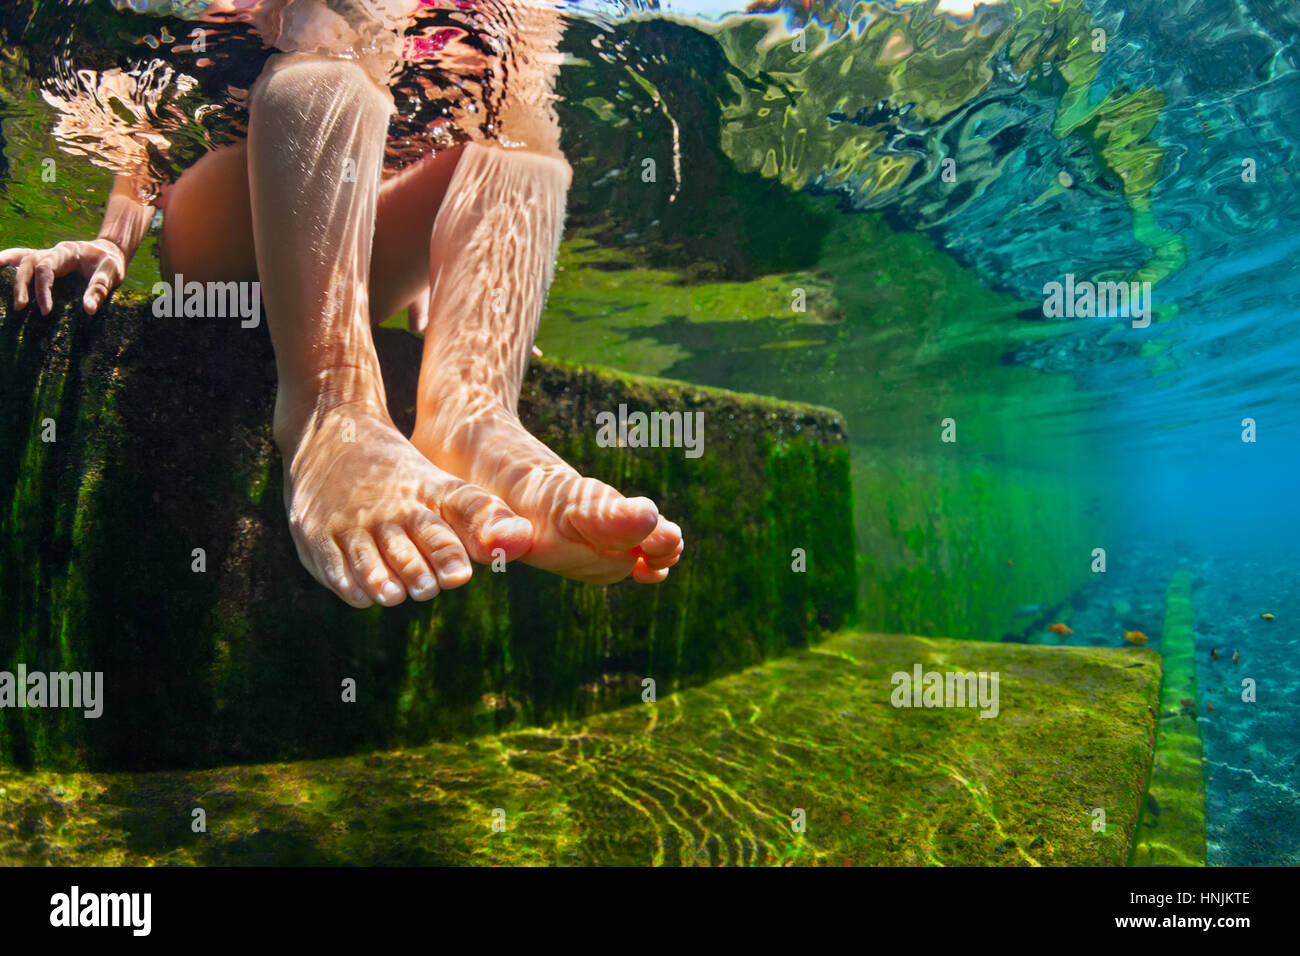 Happy person have fun at poolside edge. Funny under water photo of baby bare feet in natural pool. Family lifestyle. - Stock Image